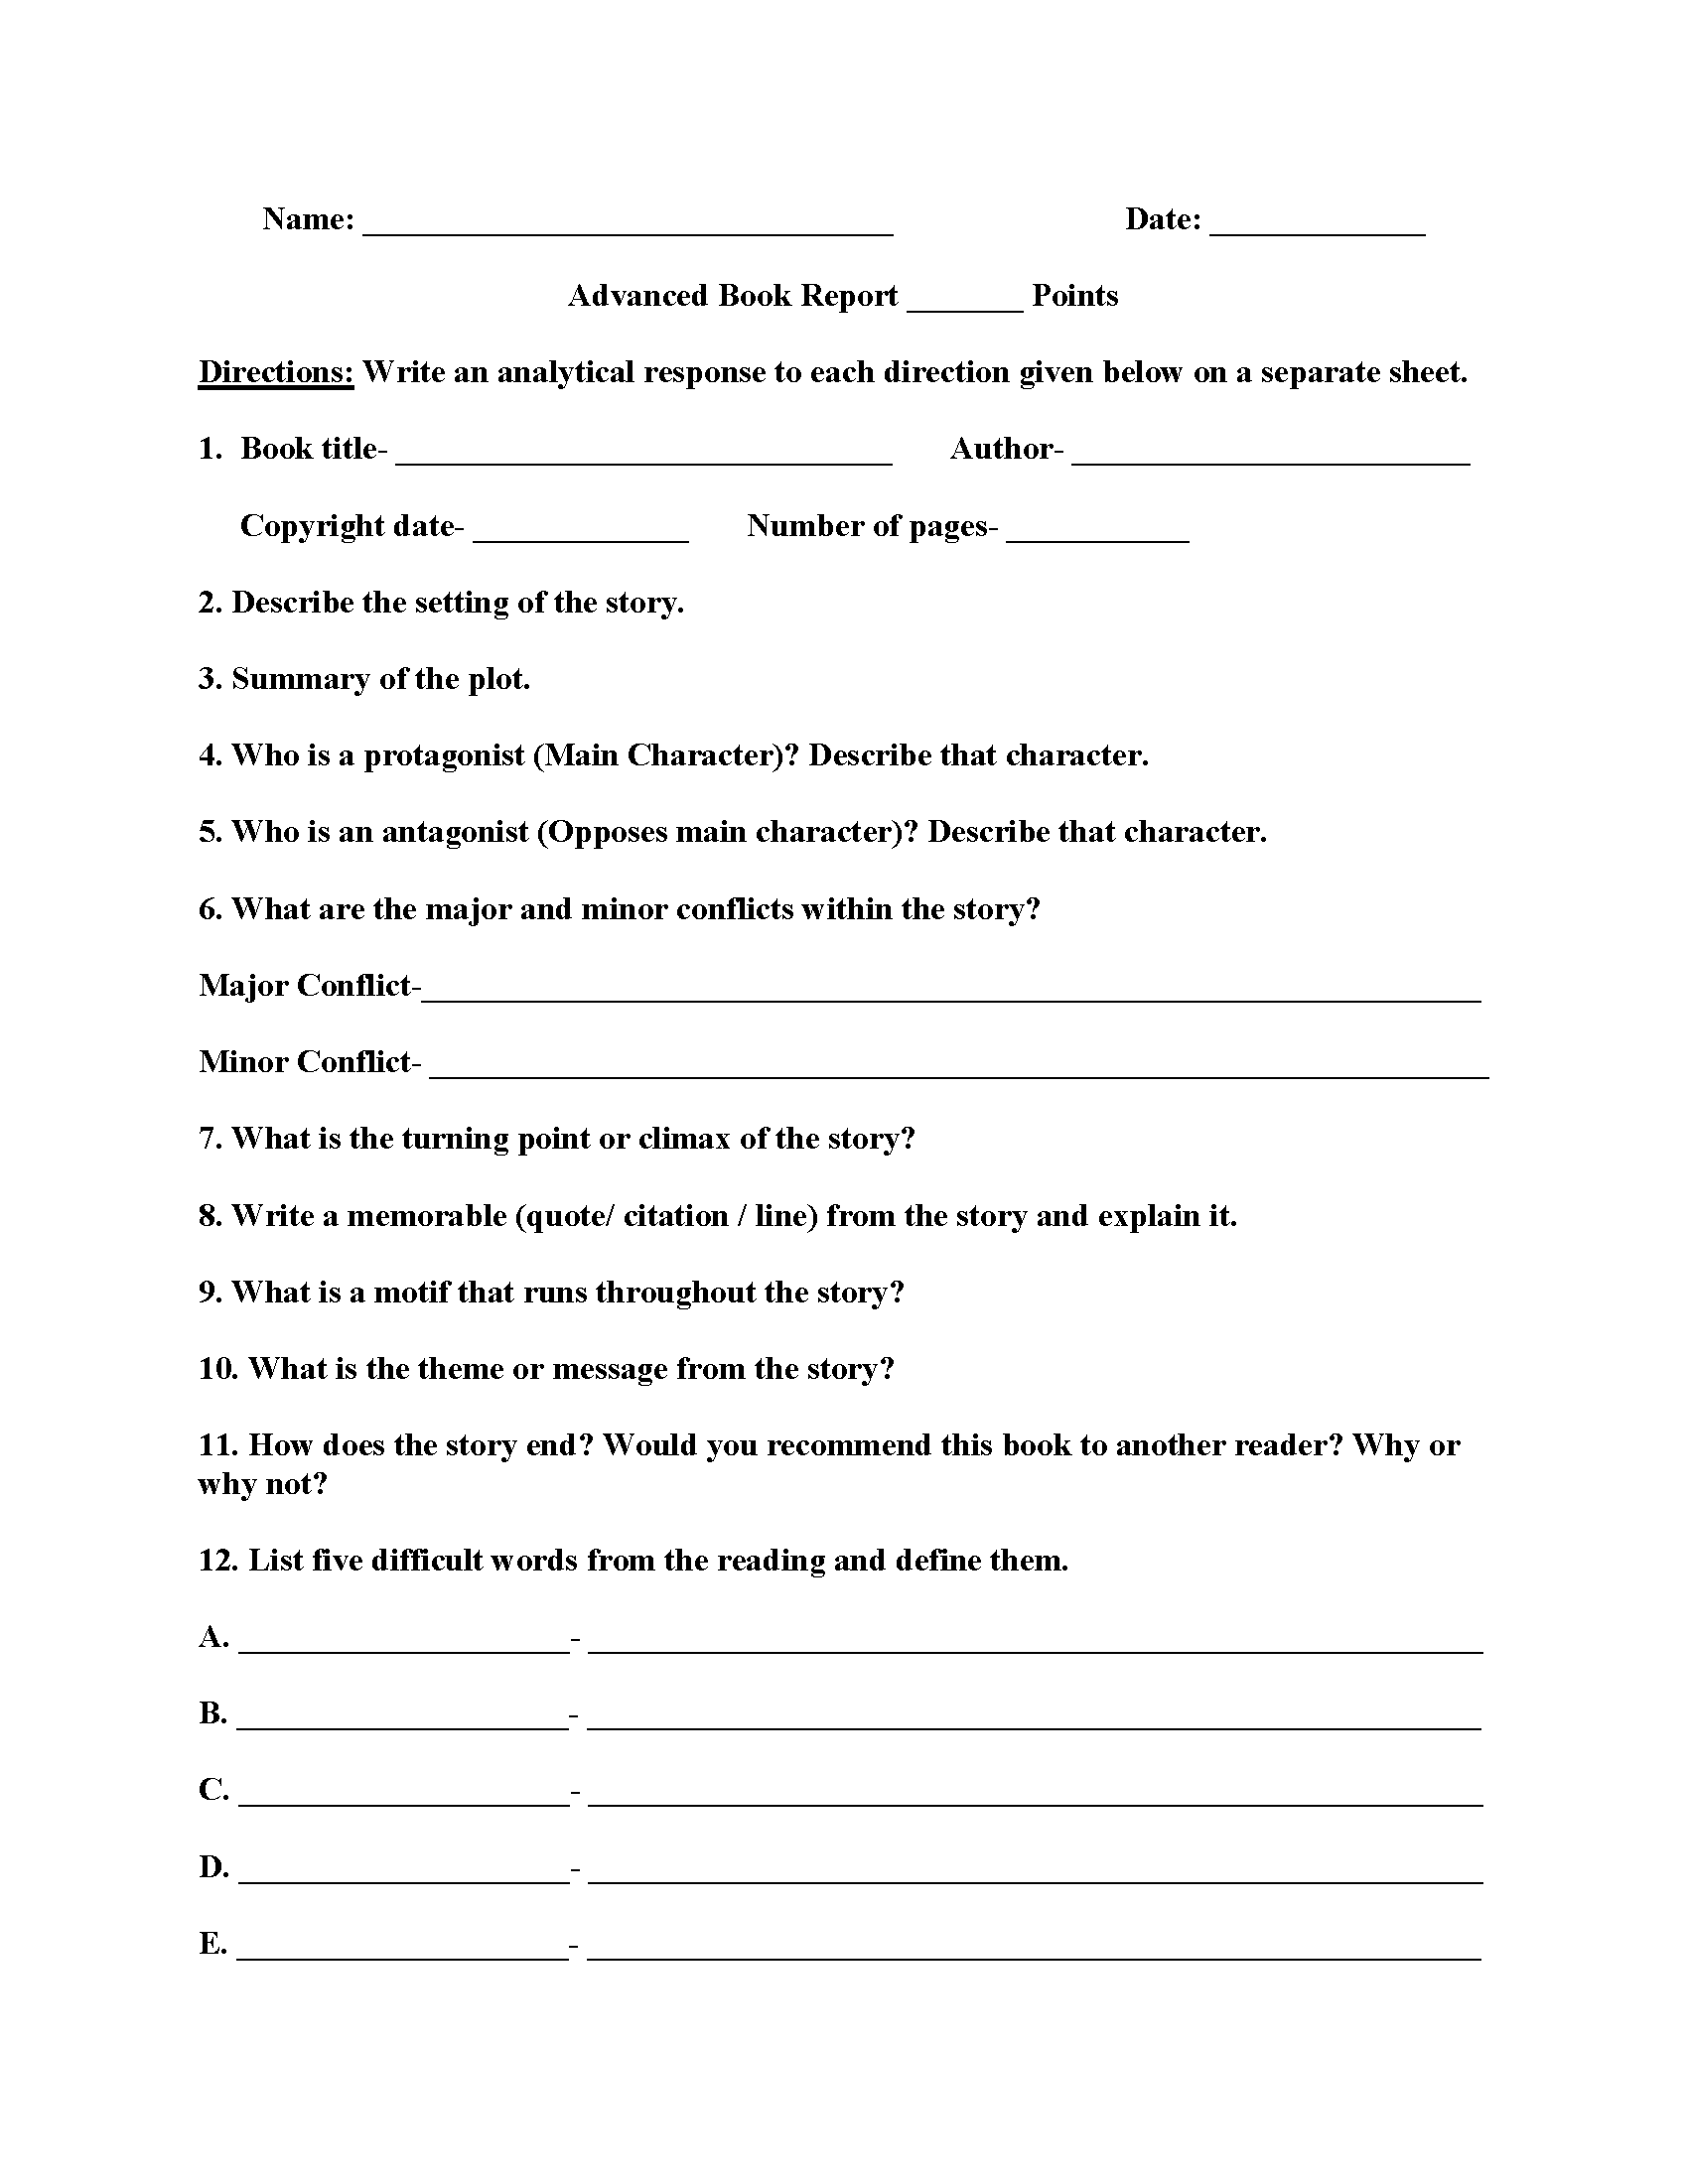 Advanced Book Report Worksheets  Homework